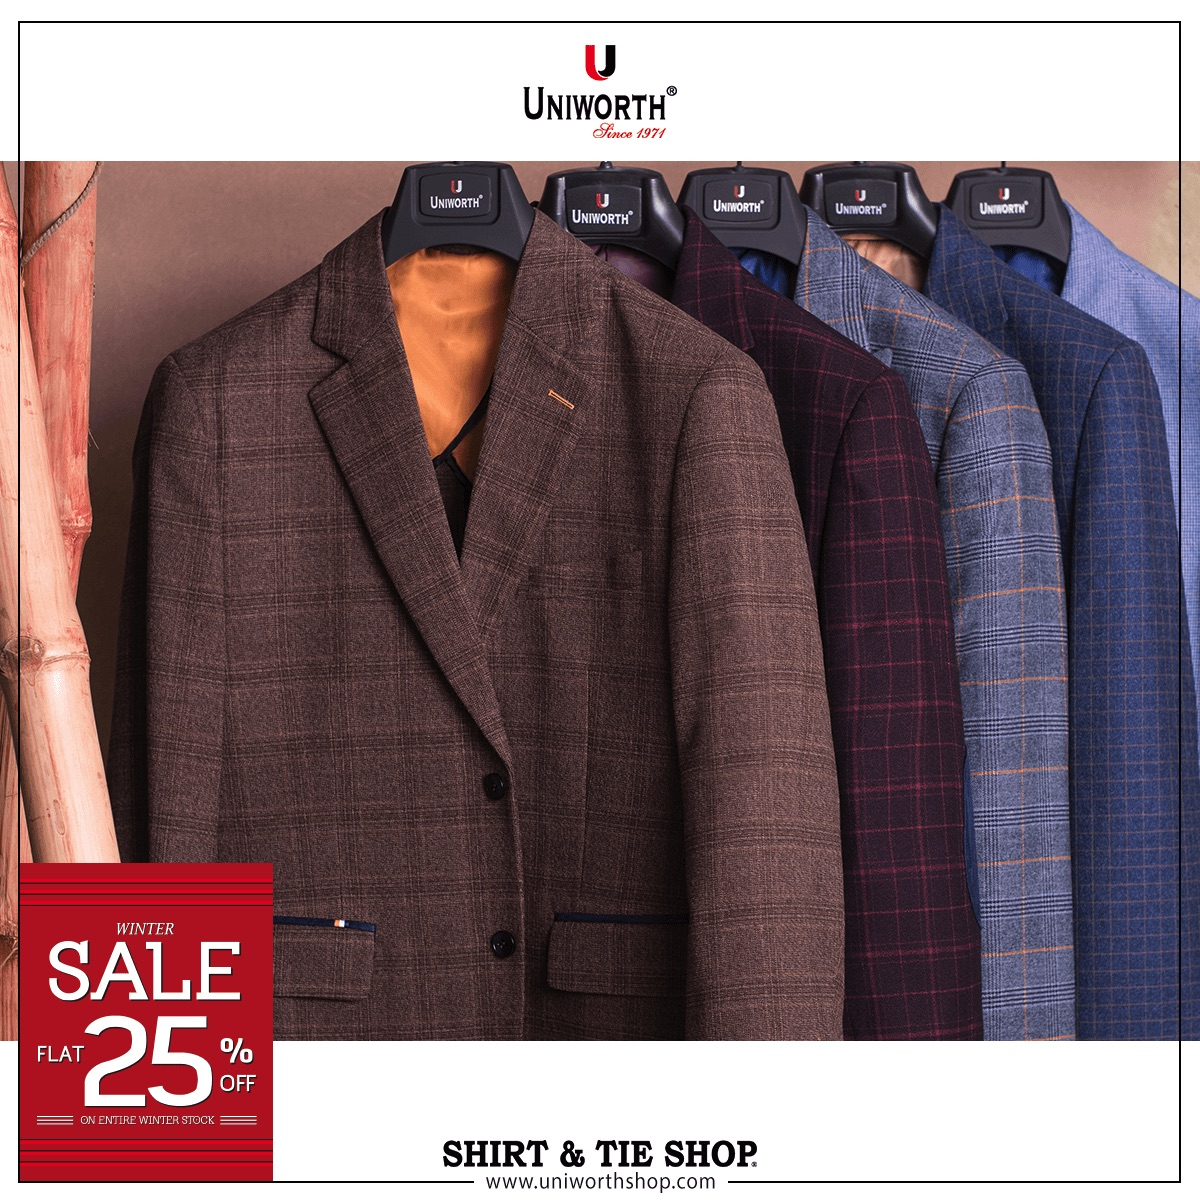 Uniworth - Winter Sale